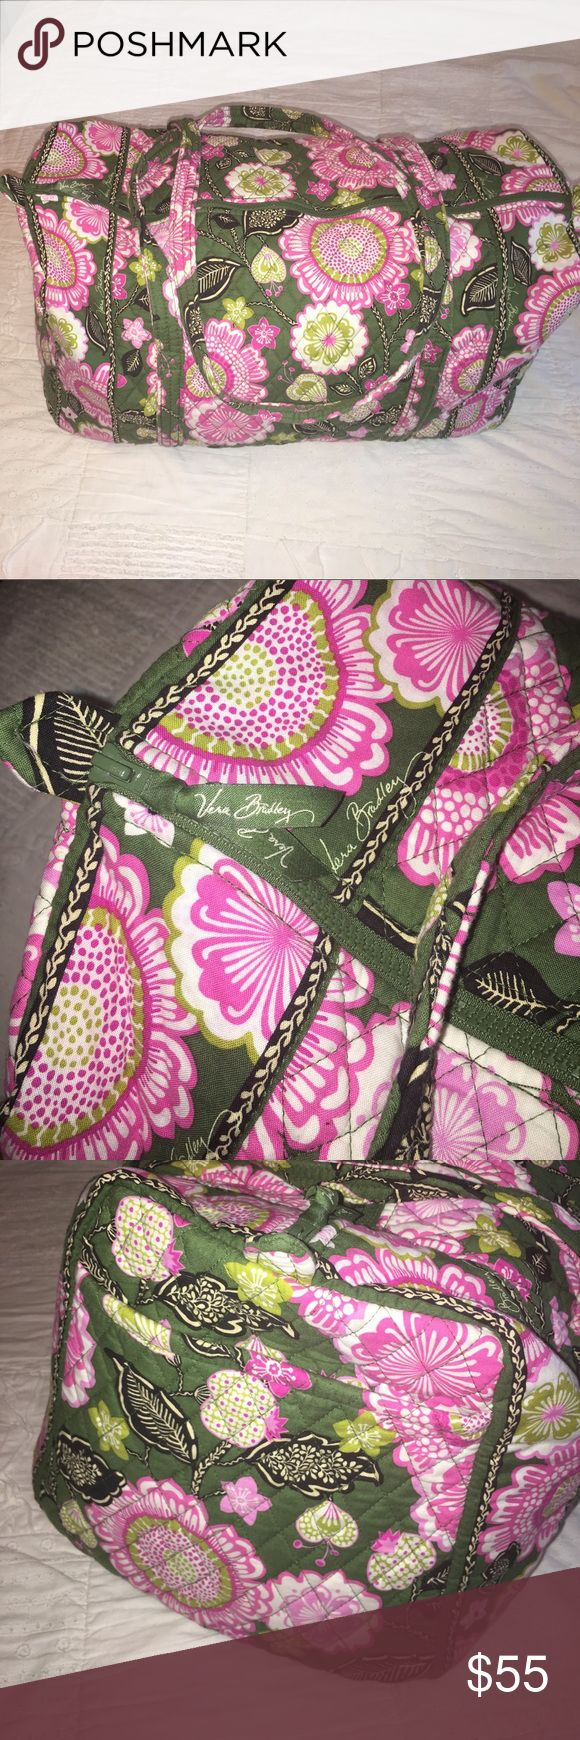 Selling this Vera Bradley Large Duffel Bag on Poshmark! My username is: sallyburke13. #shopmycloset #poshmark #fashion #shopping #style #forsale #Vera Bradley #Handbags